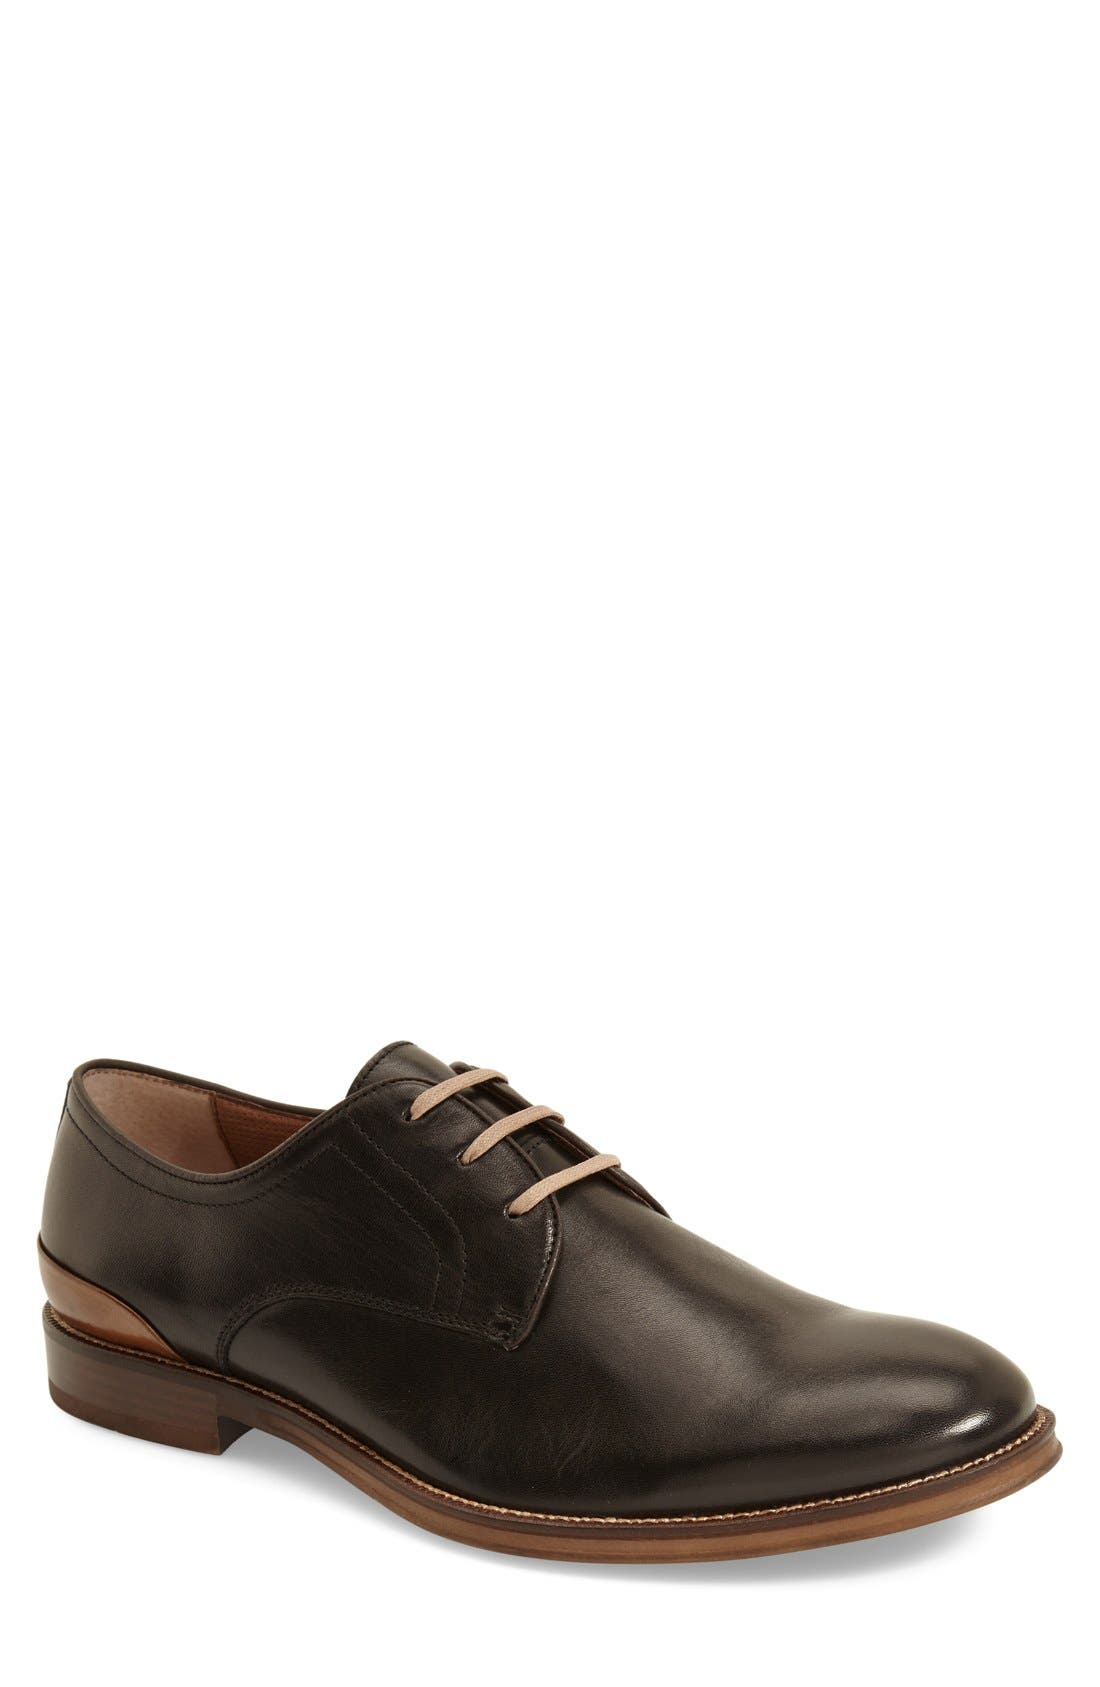 'Grayson' Plain Toe Derby,                         Main,                         color, 001